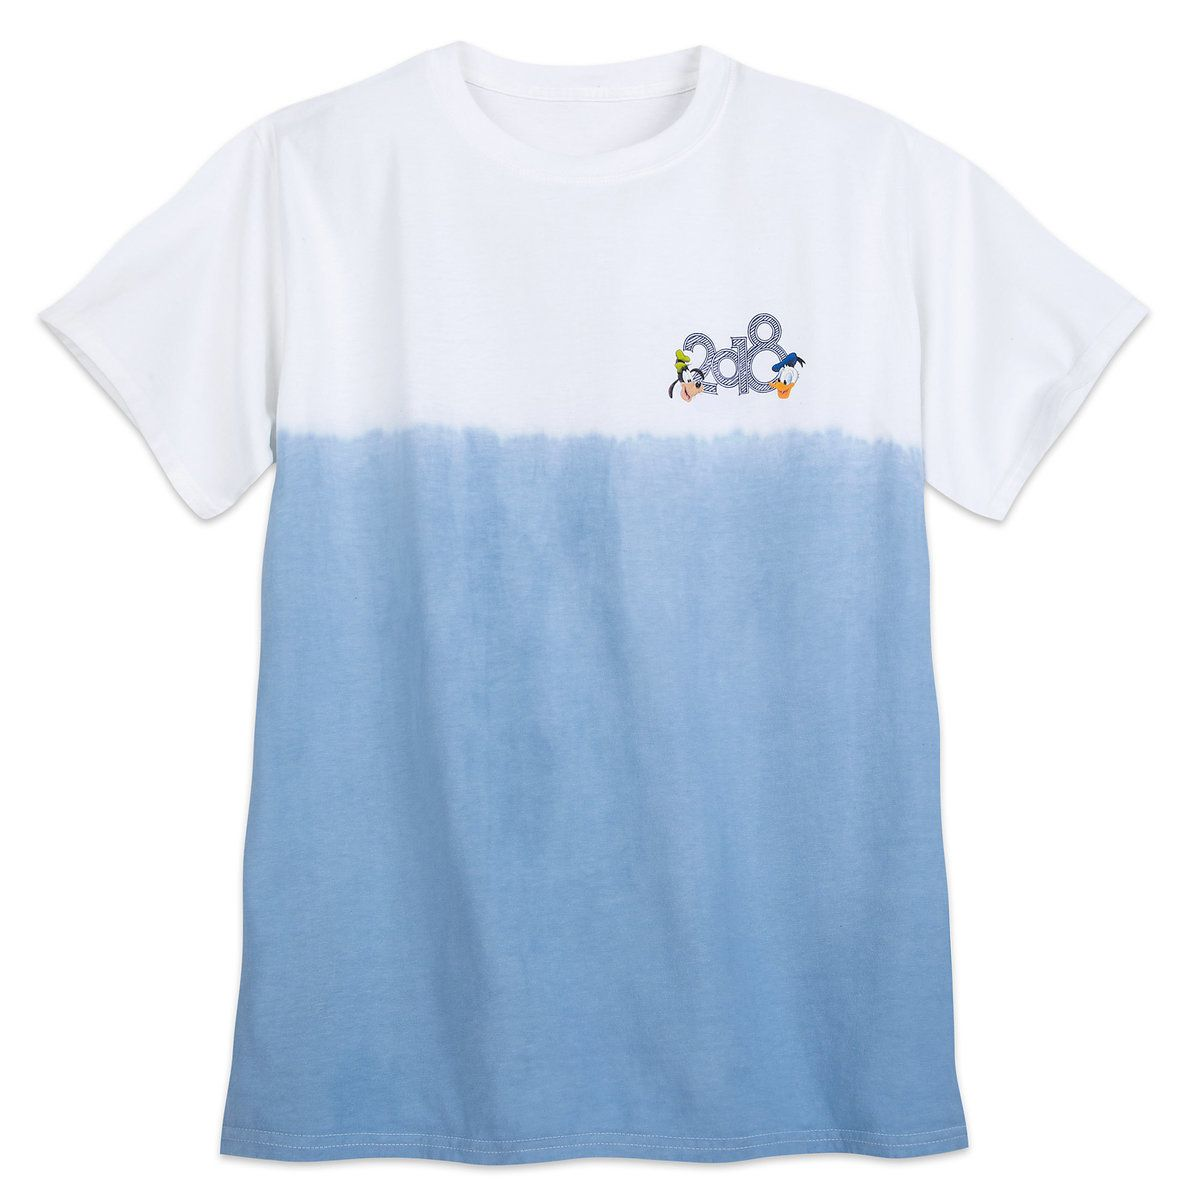 027ac55b Mickey Mouse and Friends Dip-Dye T-Shirt for Adults - Walt Disney World 2018